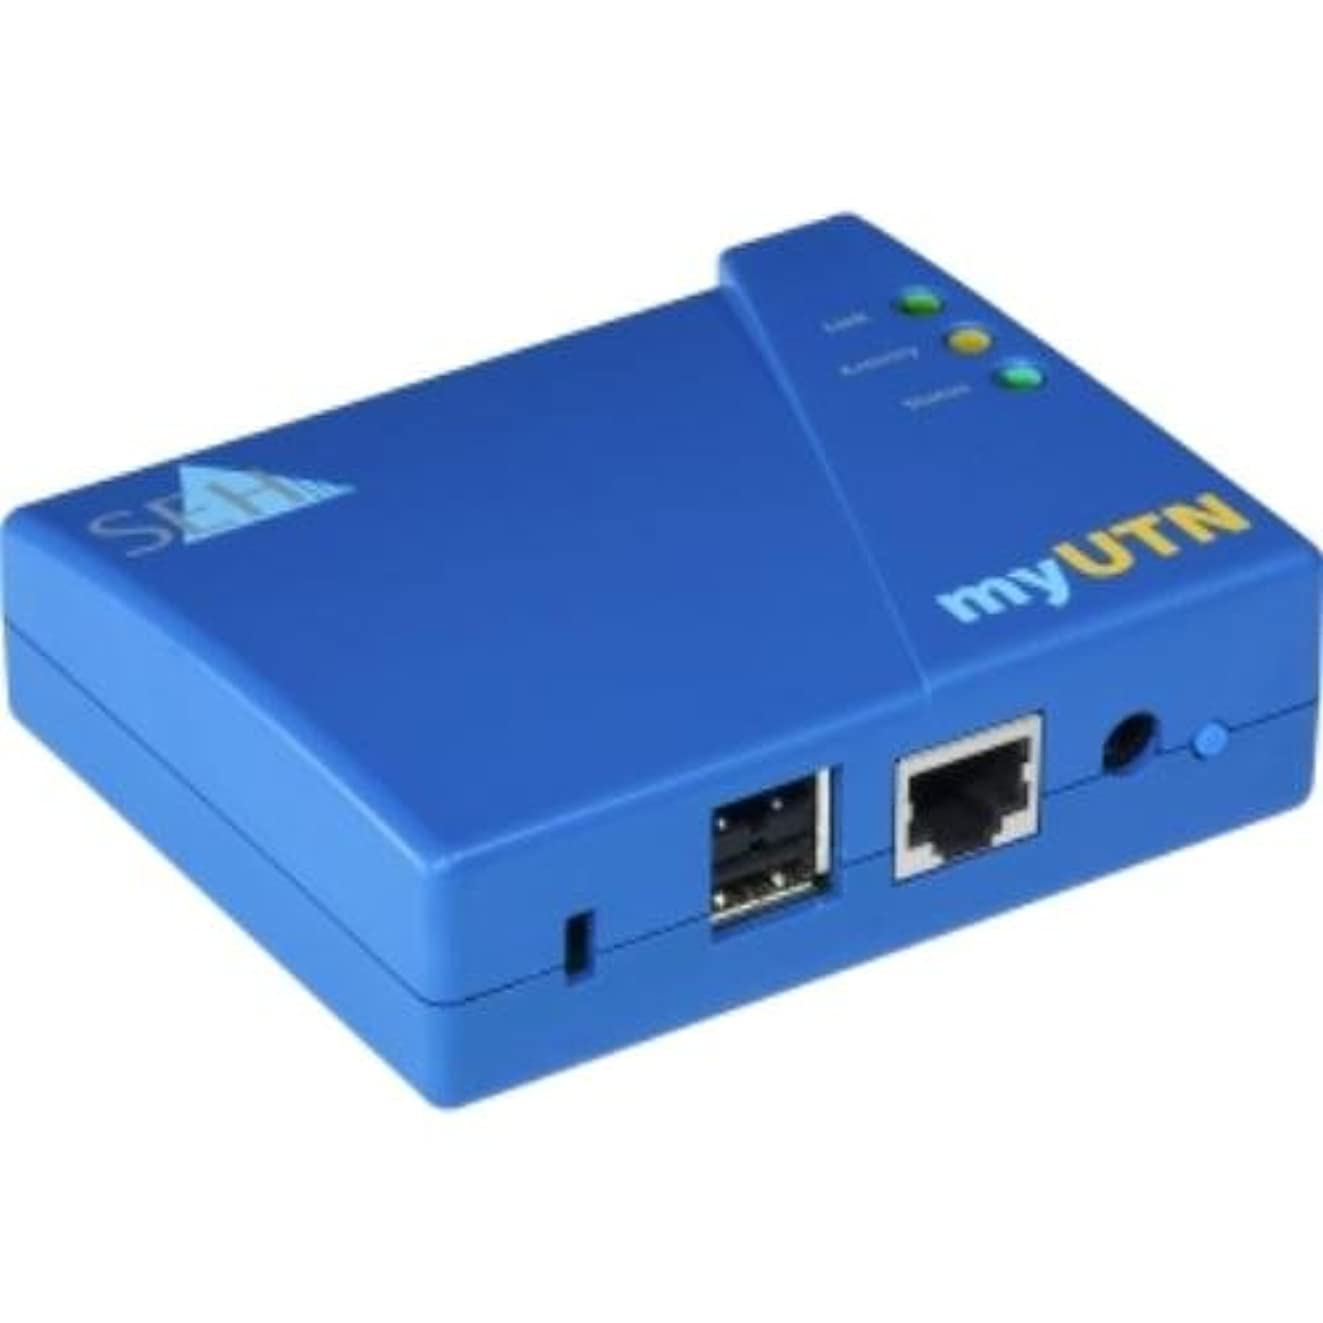 Seh myUTN-50a - Device Server - 10Mb LAN, USB, 100Mb LAN, GigE, USB 2.0 (M05032)